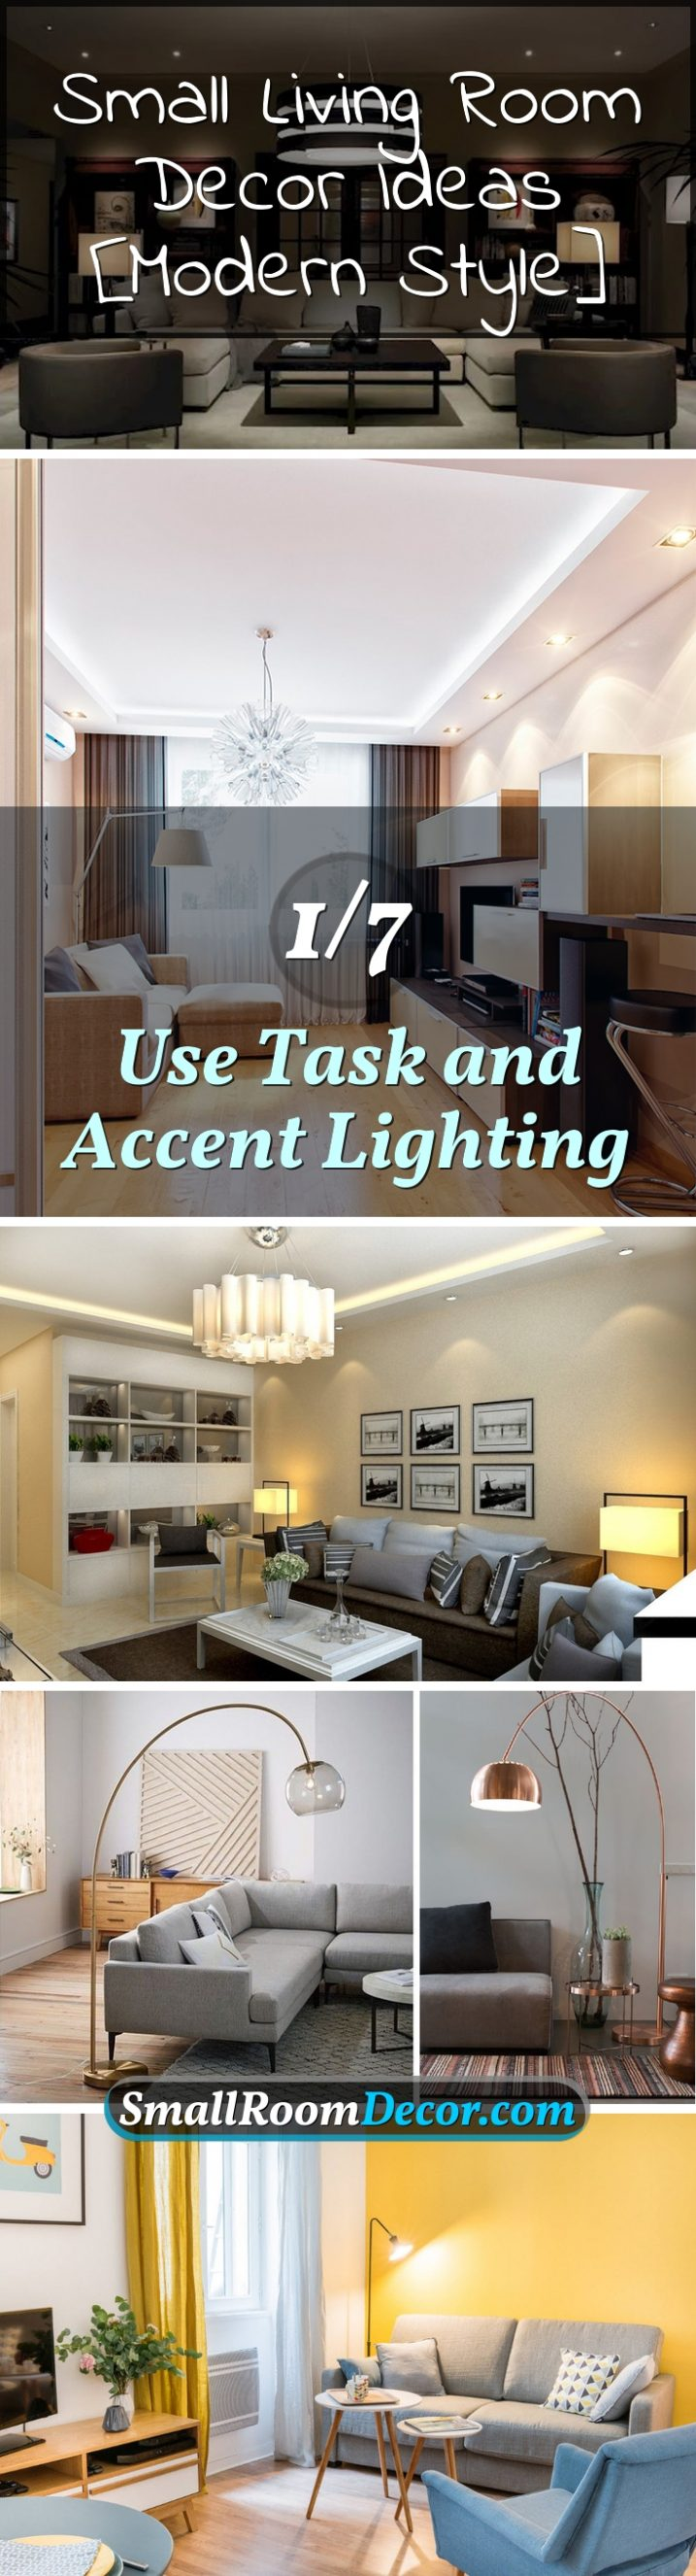 Task and accent lighting #livingroomlighting